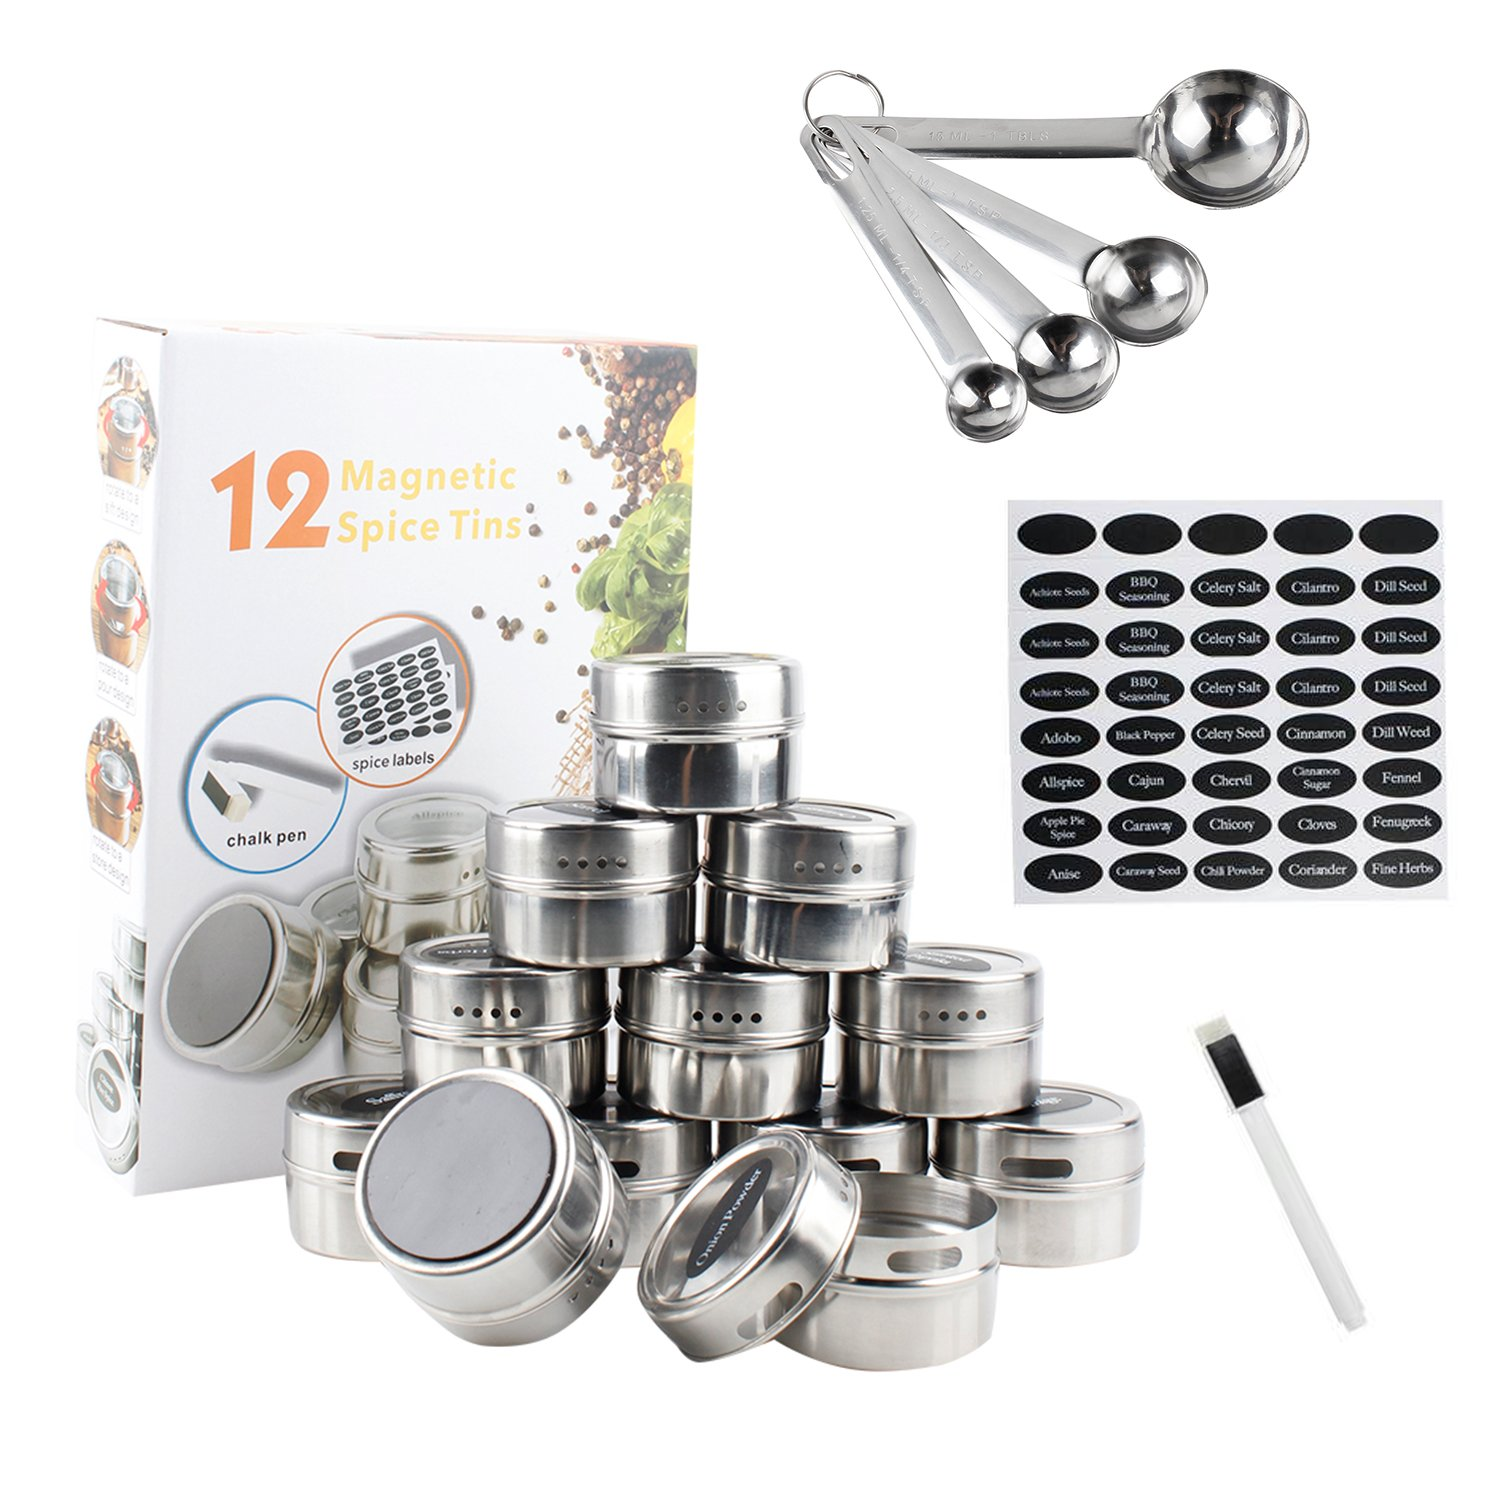 12 Magnetic Spice Tins | 12 Stainless Steel Magnetic Spice Tins Magnetic on Fridge + 120 Spice Labels + White Pen + Measuring Spoons